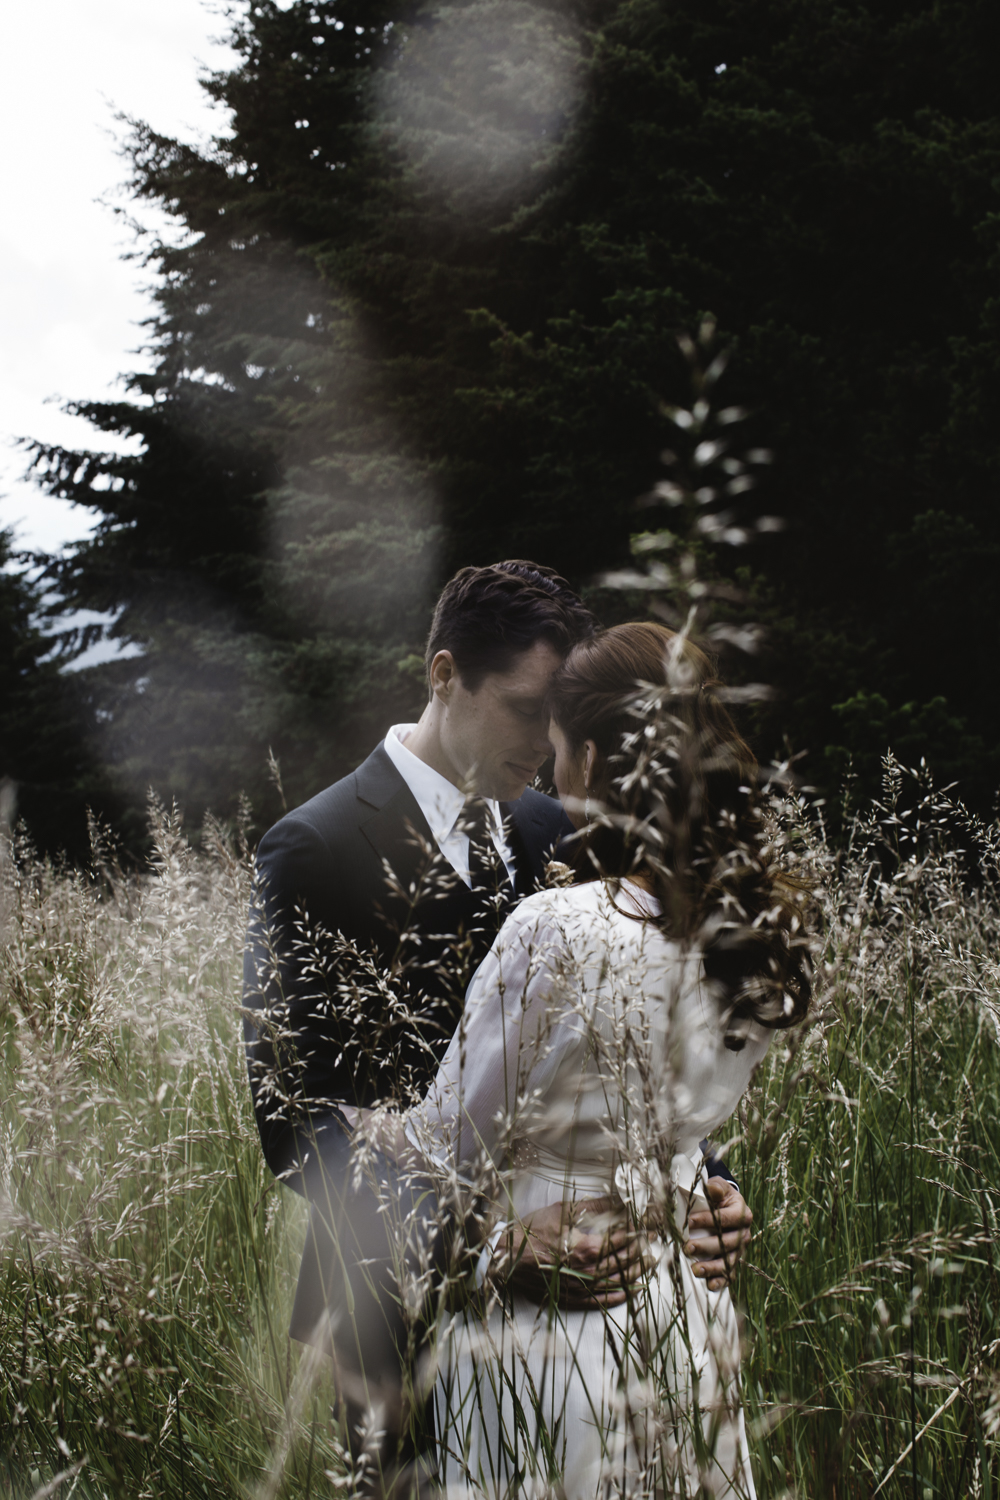 sarah-danielle-photography-intimate-wedding-photographer-101.jpg